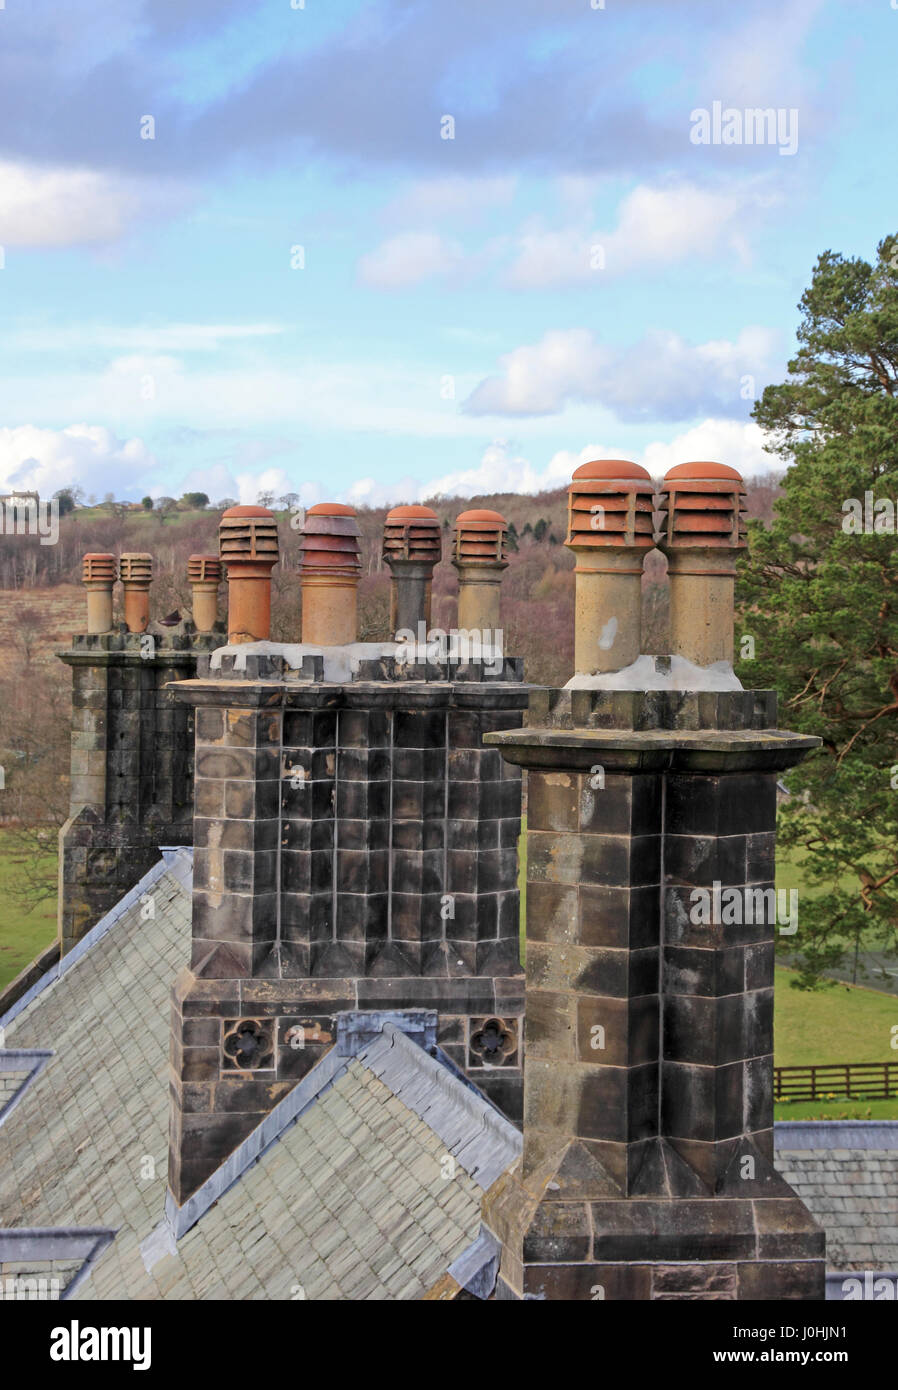 Row of chimney pots on top of historic house - Stock Image